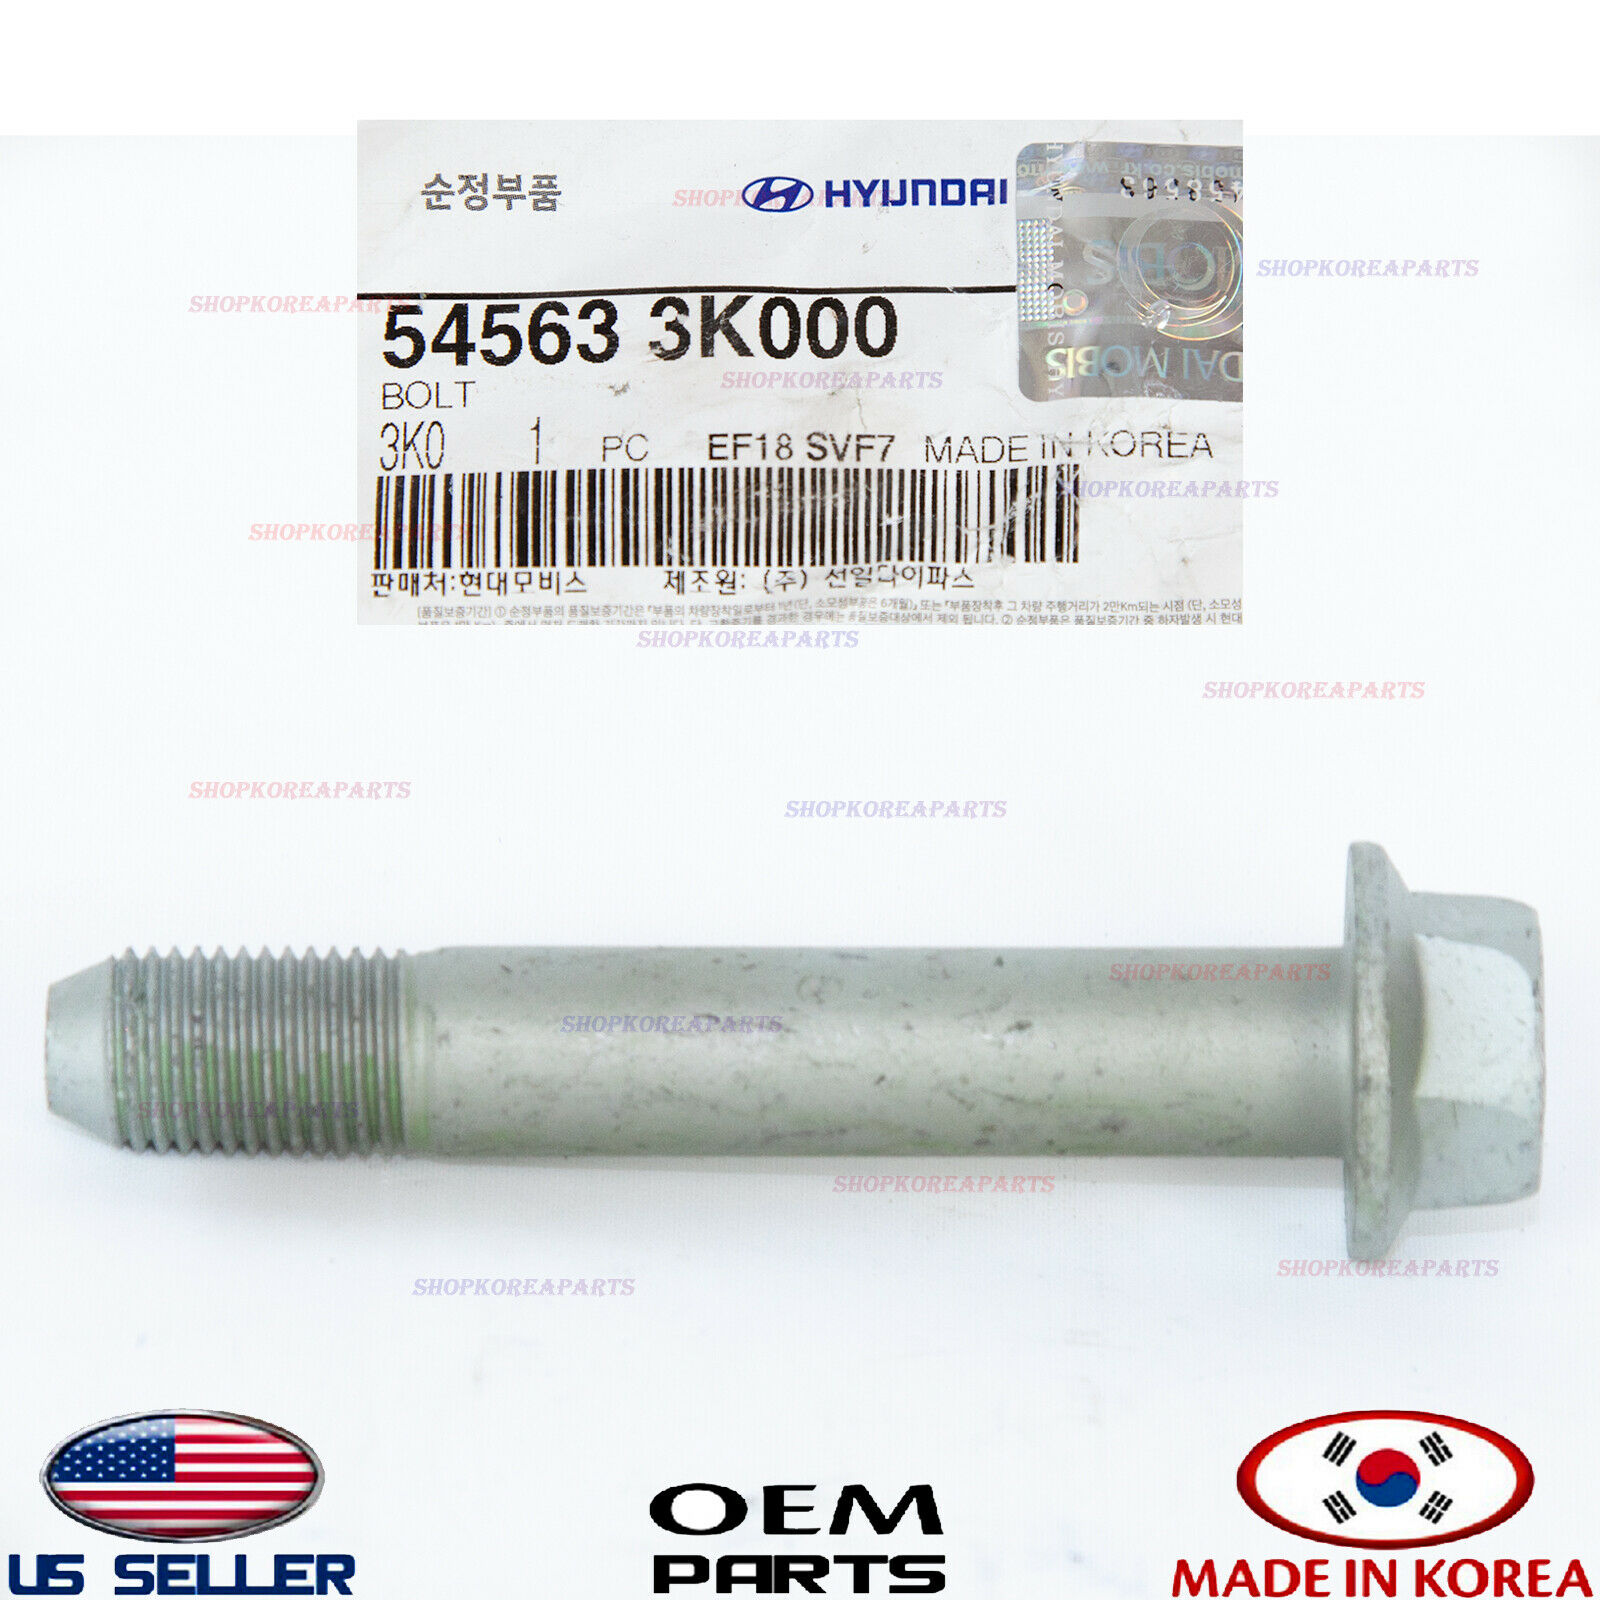 FRONT Suspension Lower Control Arm Rear Bolt OEM For Hyundai 545633K000